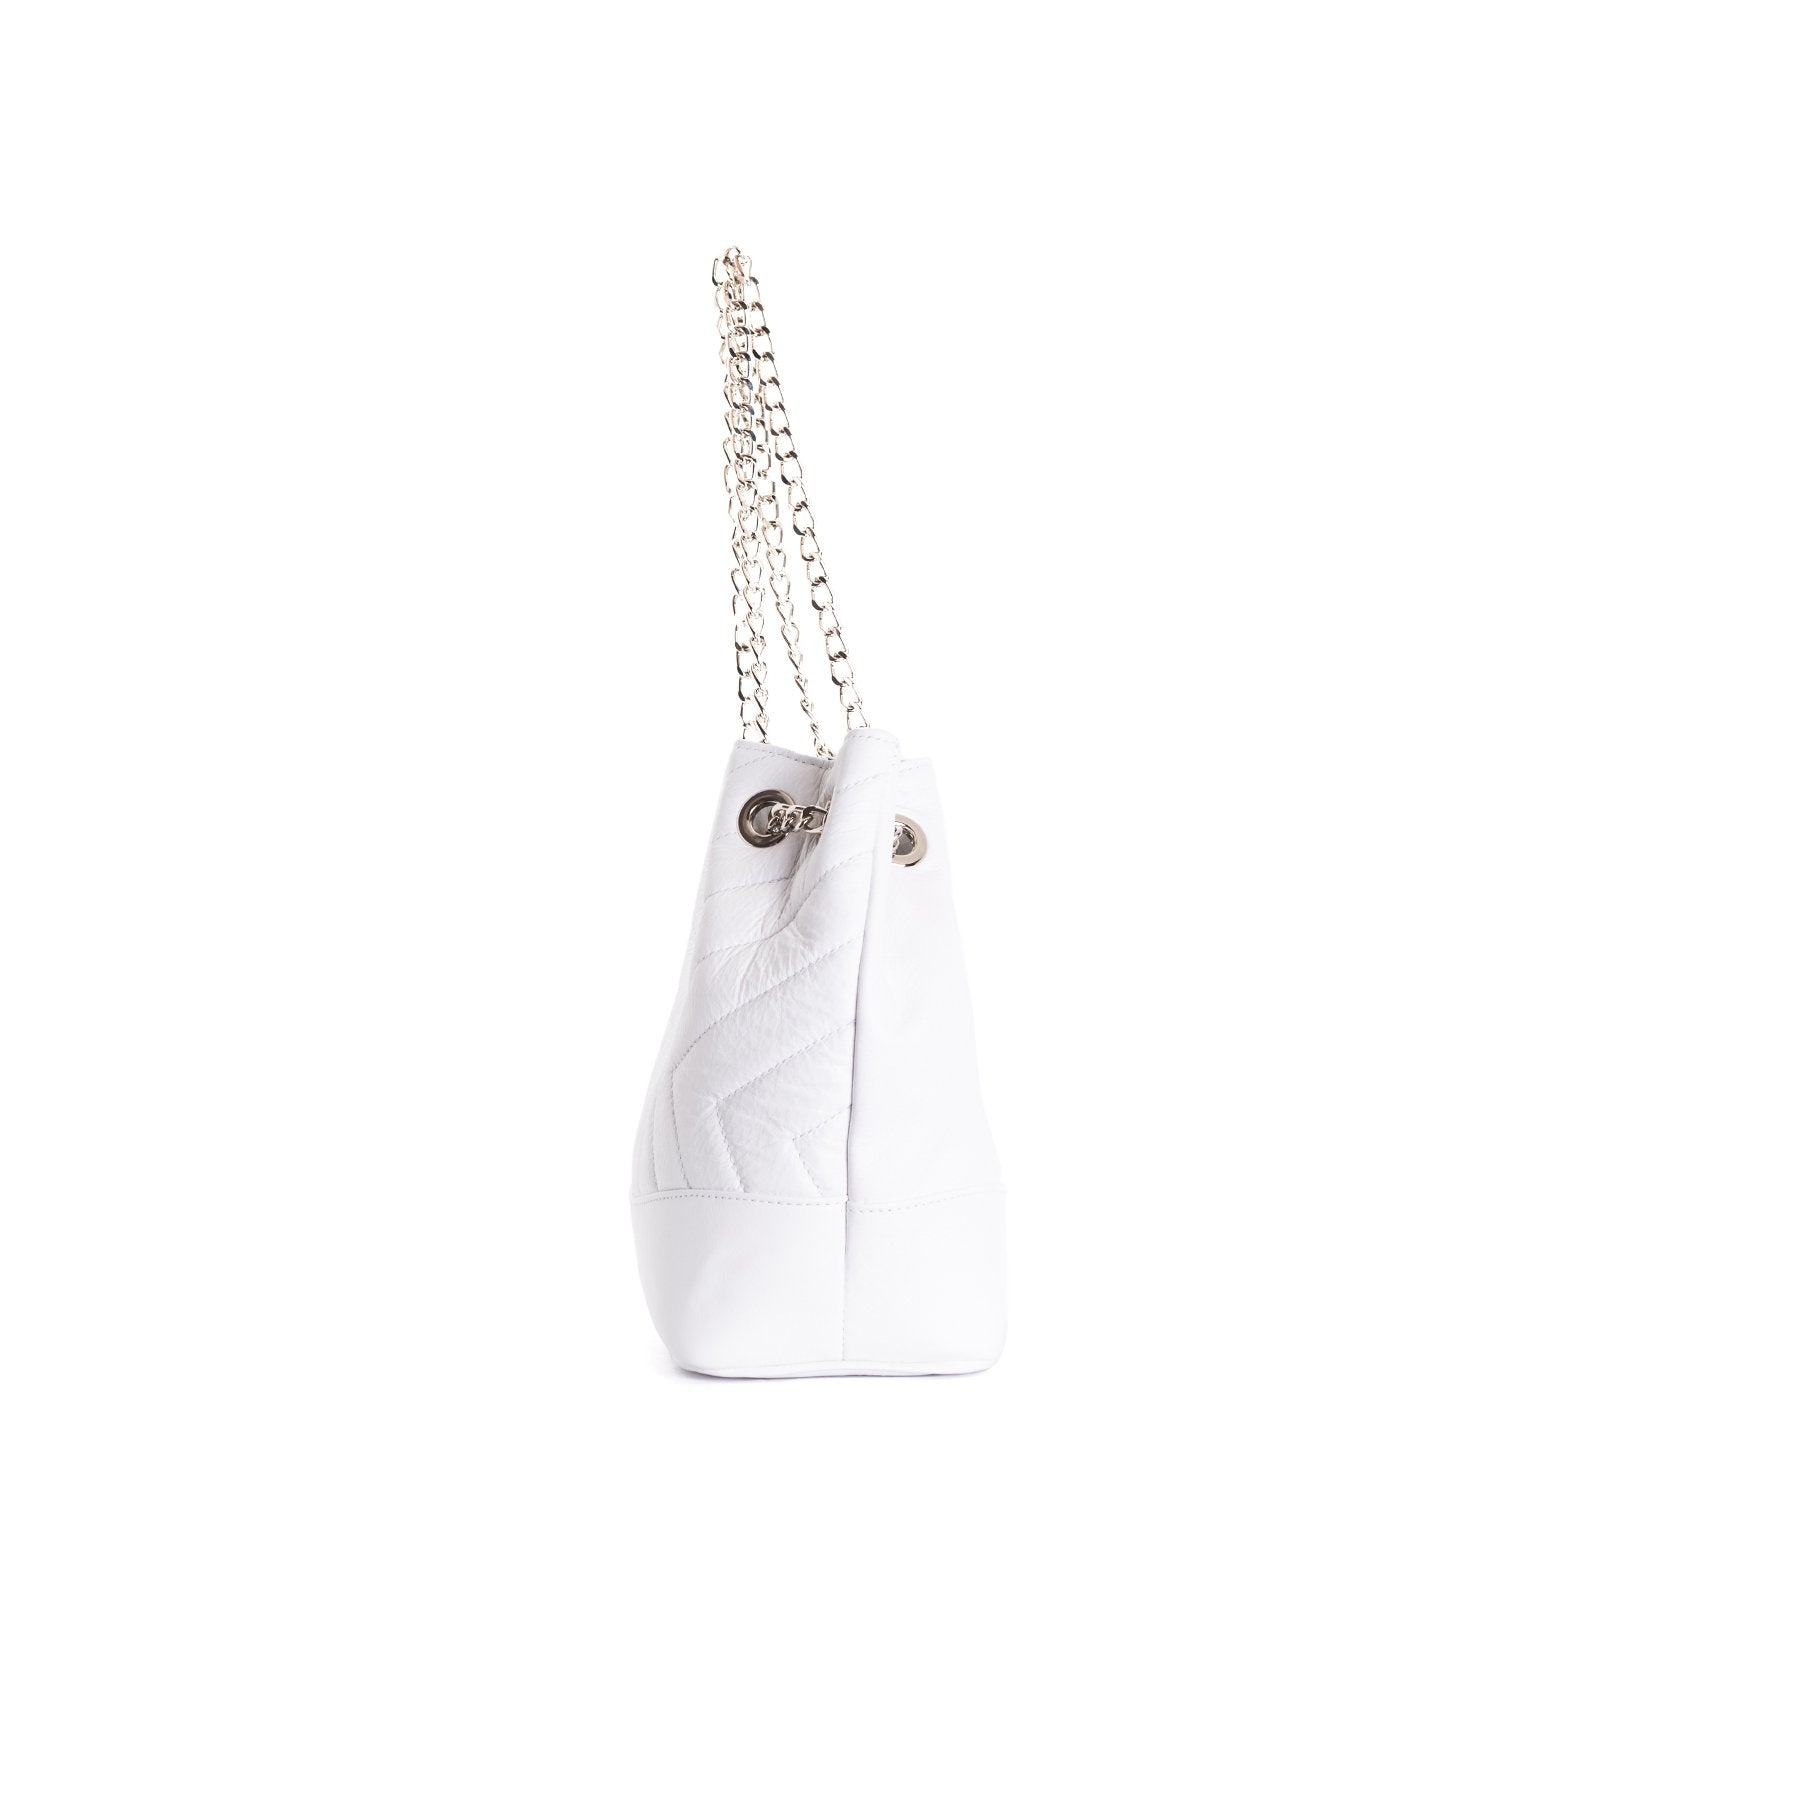 Ginette White Leather Shoulder Bags